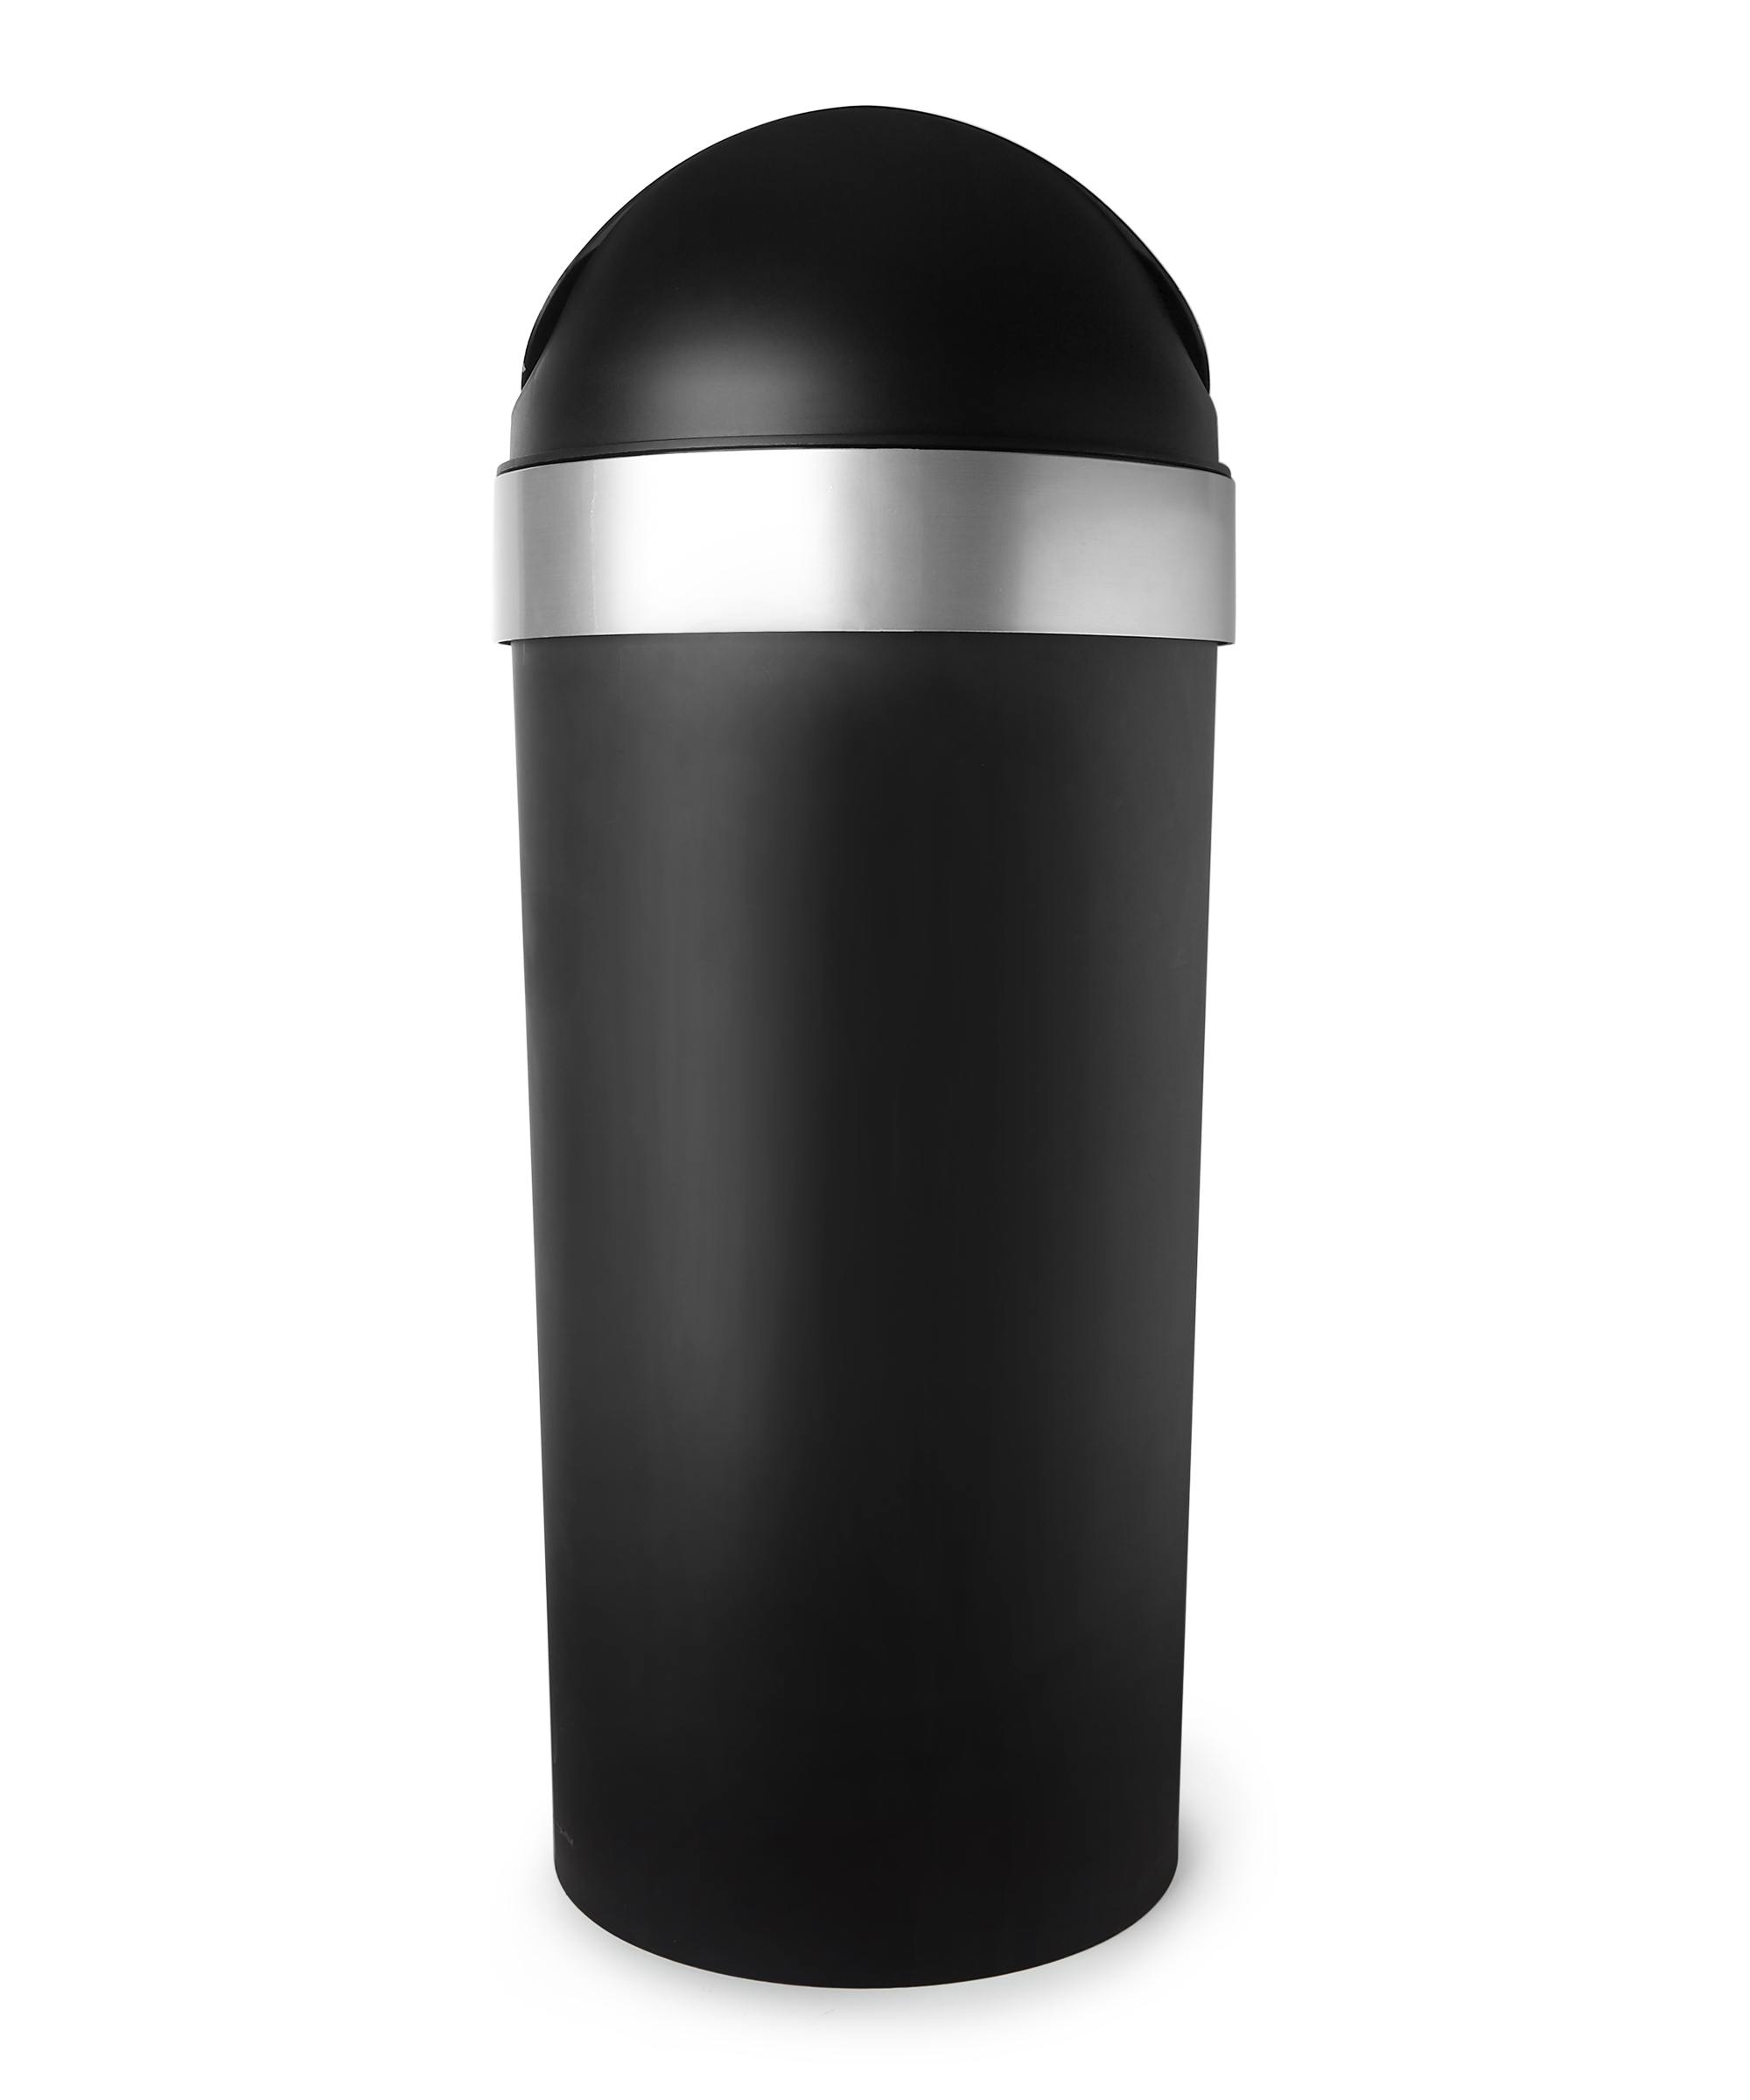 Umbra Venti 16.5-Gallon Swing Top Kitchen Trash Can for Indoor, Outdoor or  Commercial Use